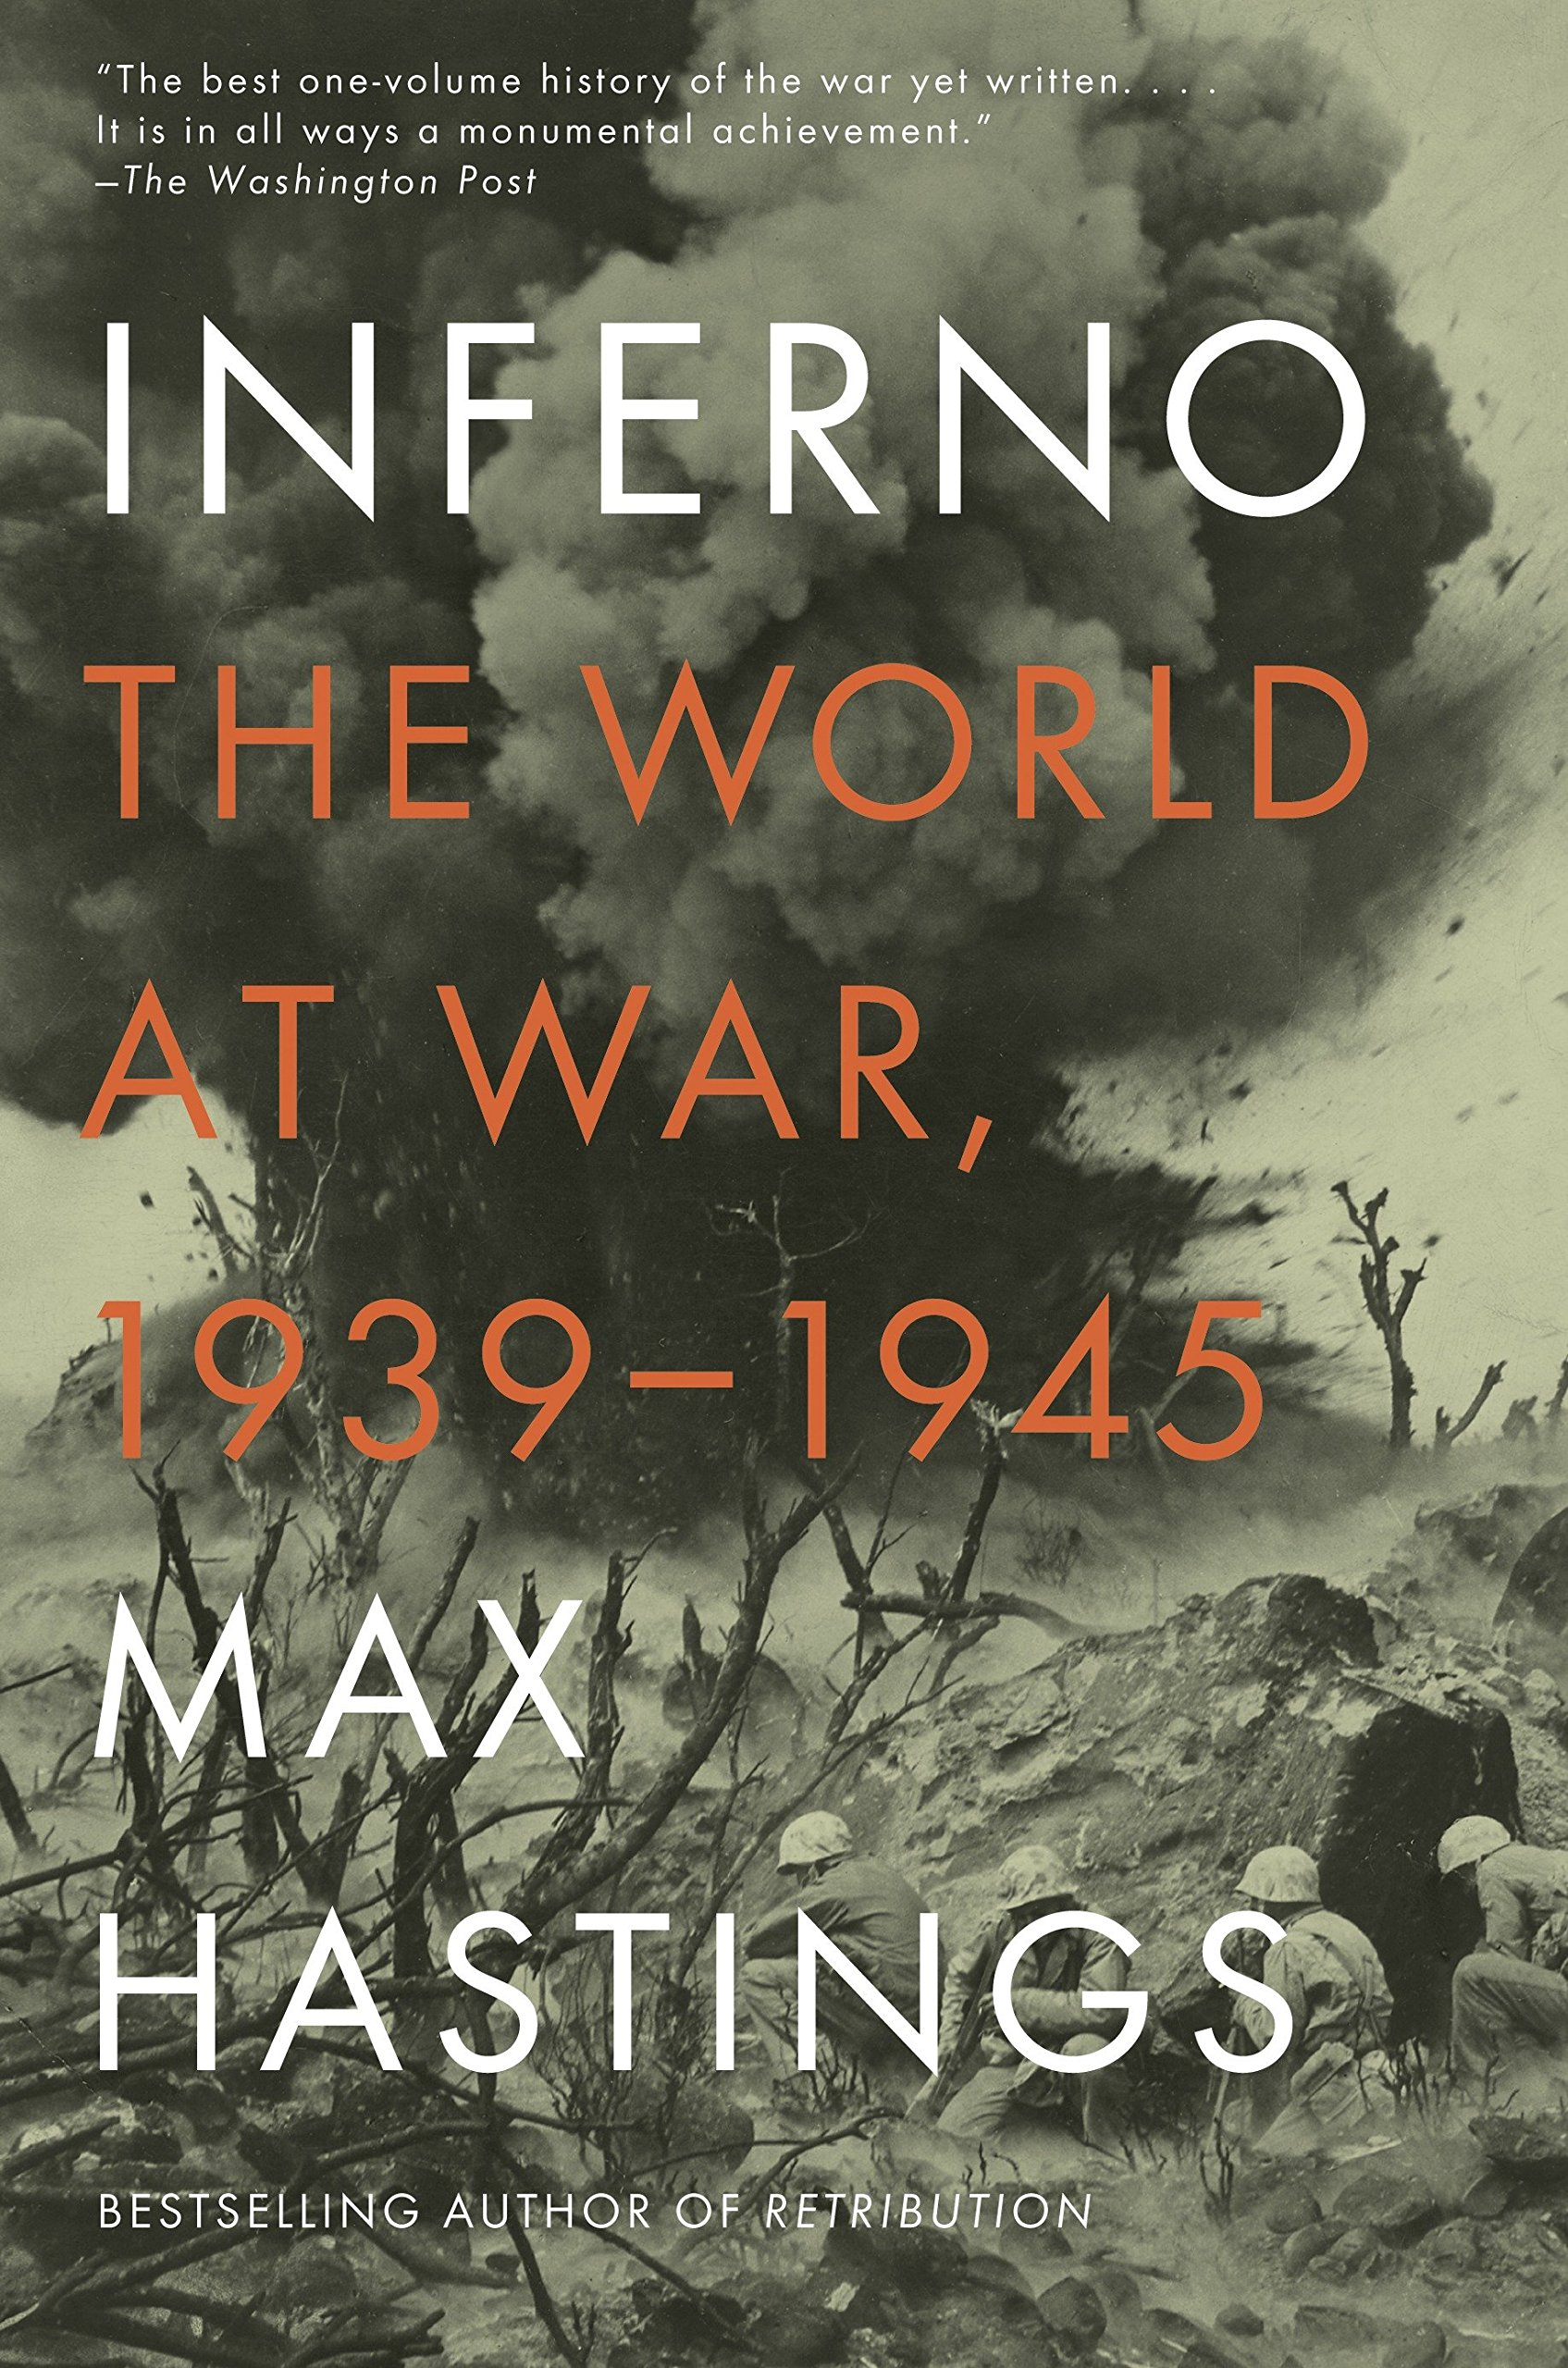 Inferno: The World at War, 1939-1945: Max Hastings